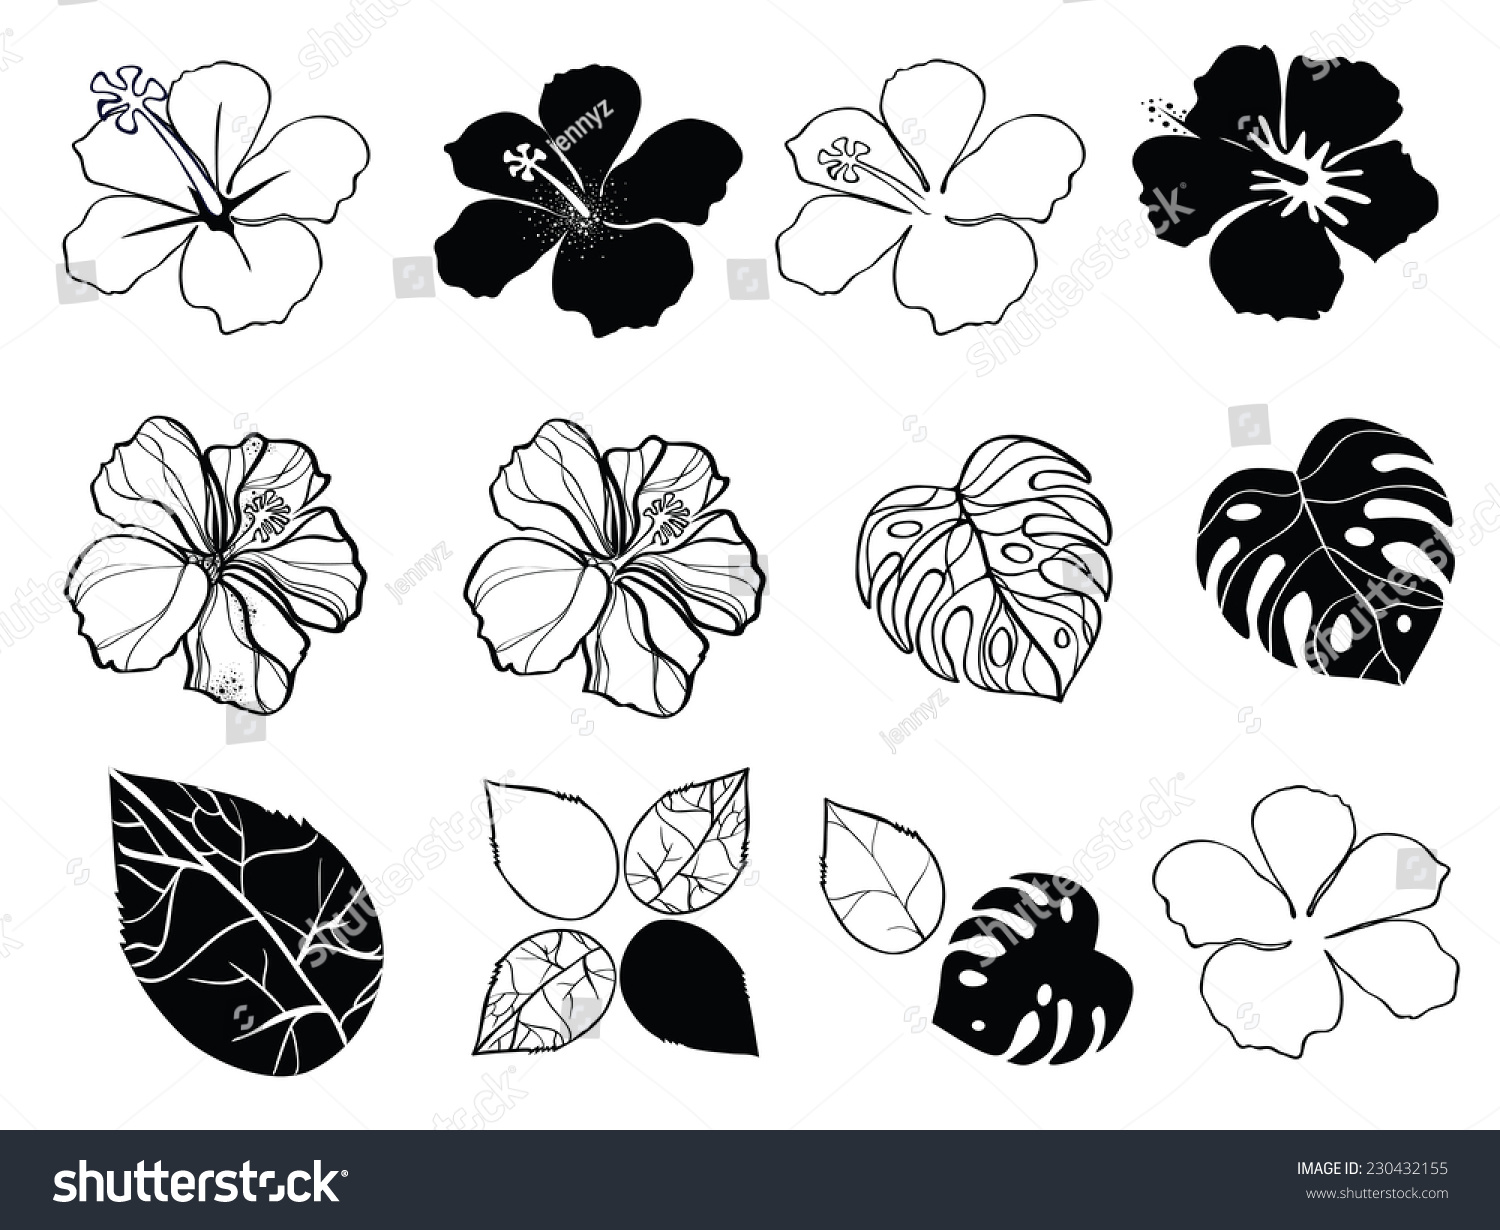 Black White Flowers Hibiscus Stock Vector Royalty Free 230432155